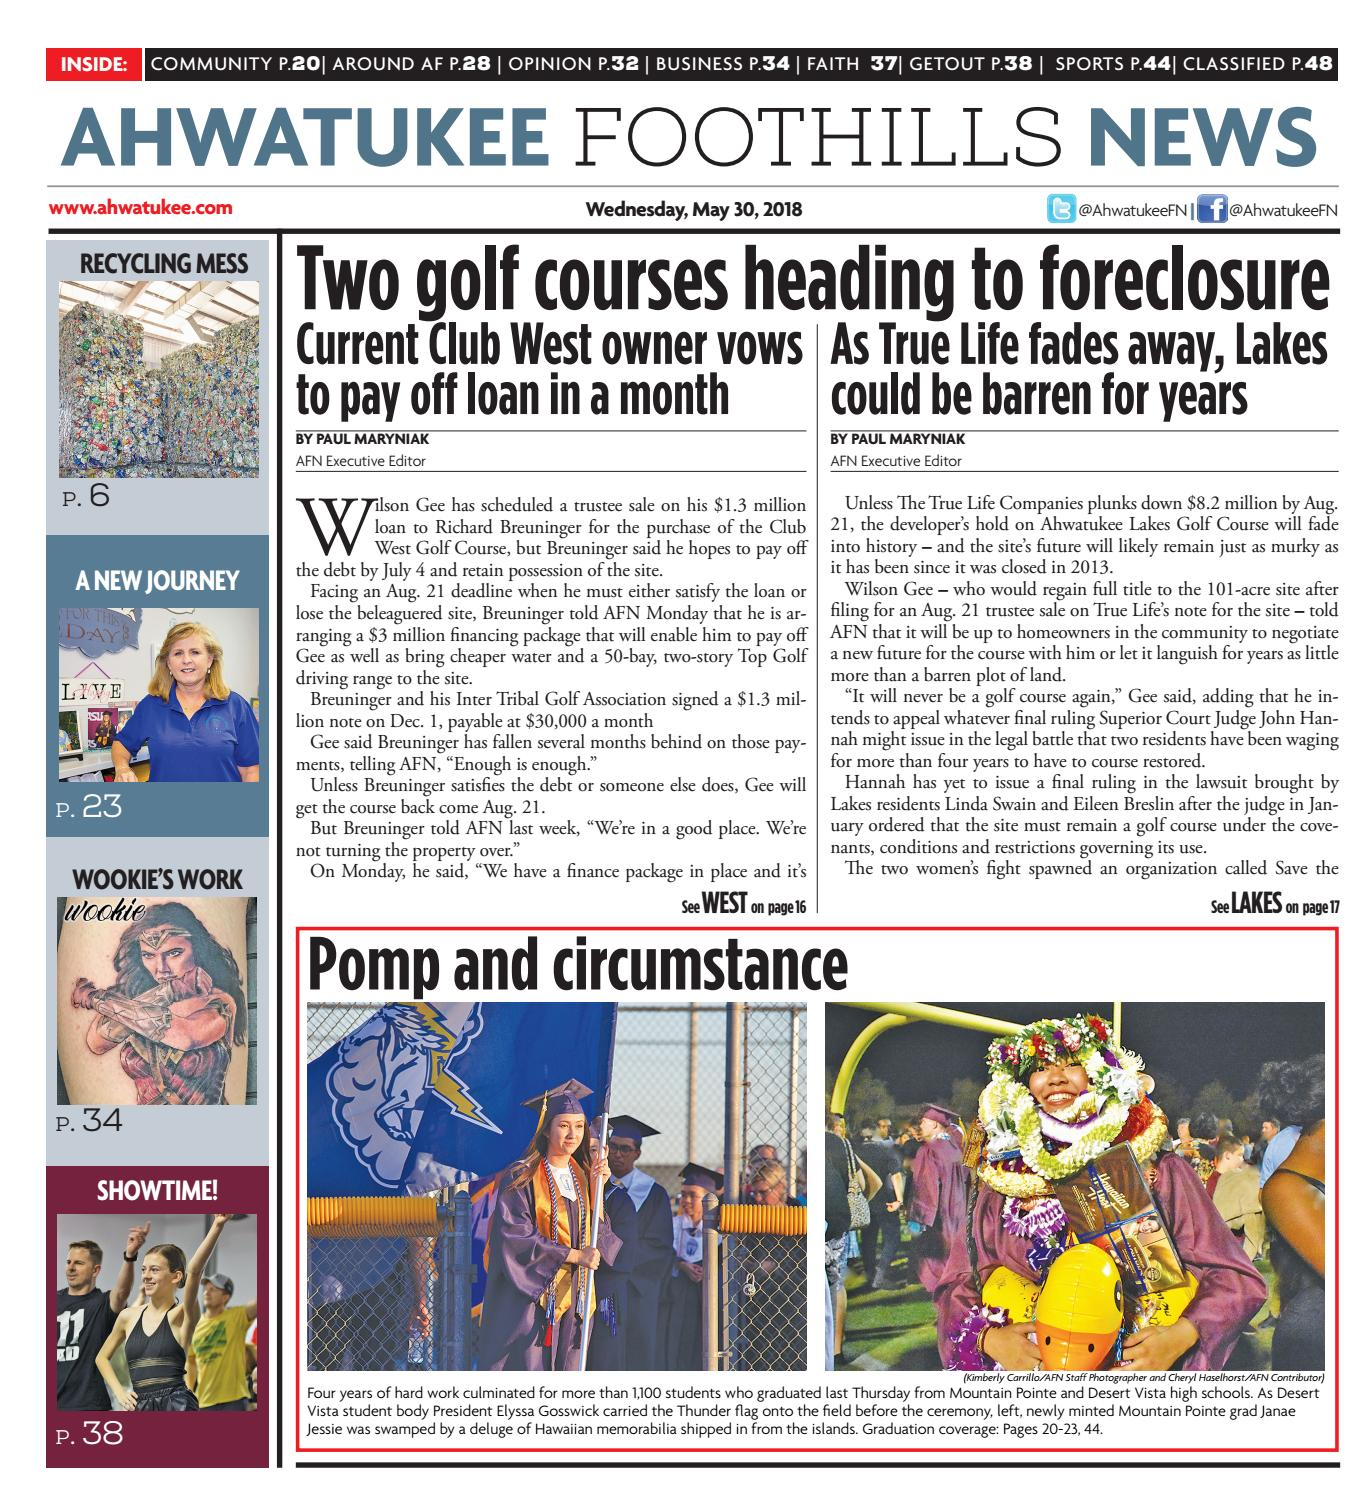 50a108993de2 Ahwatukee Foothills News - May 30 2018 by Times Media Group - issuu